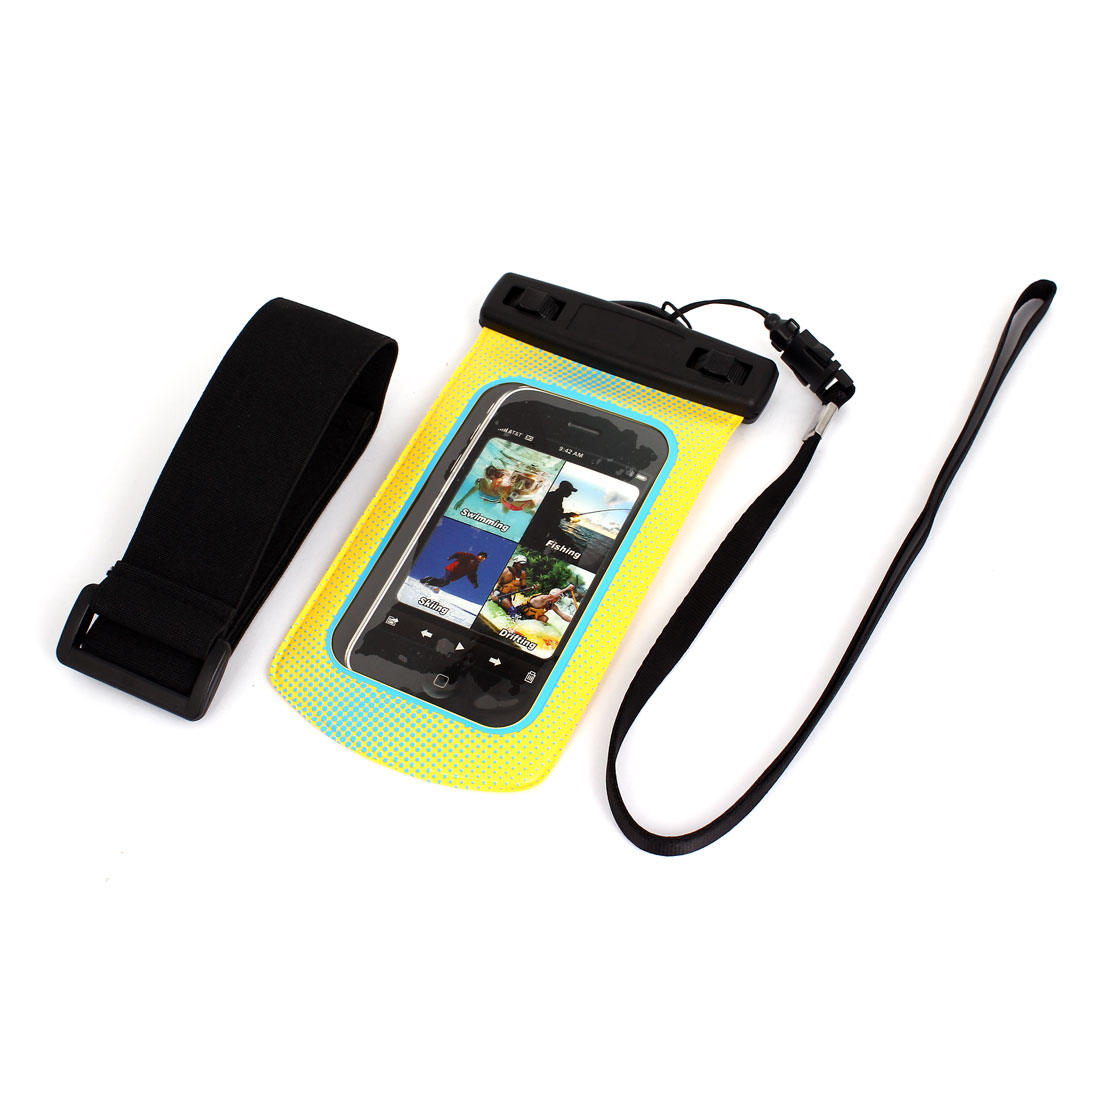 Waterproof Dots Pattern Bag Holder Blue Yellow for iPhone 5G w Neck Strap